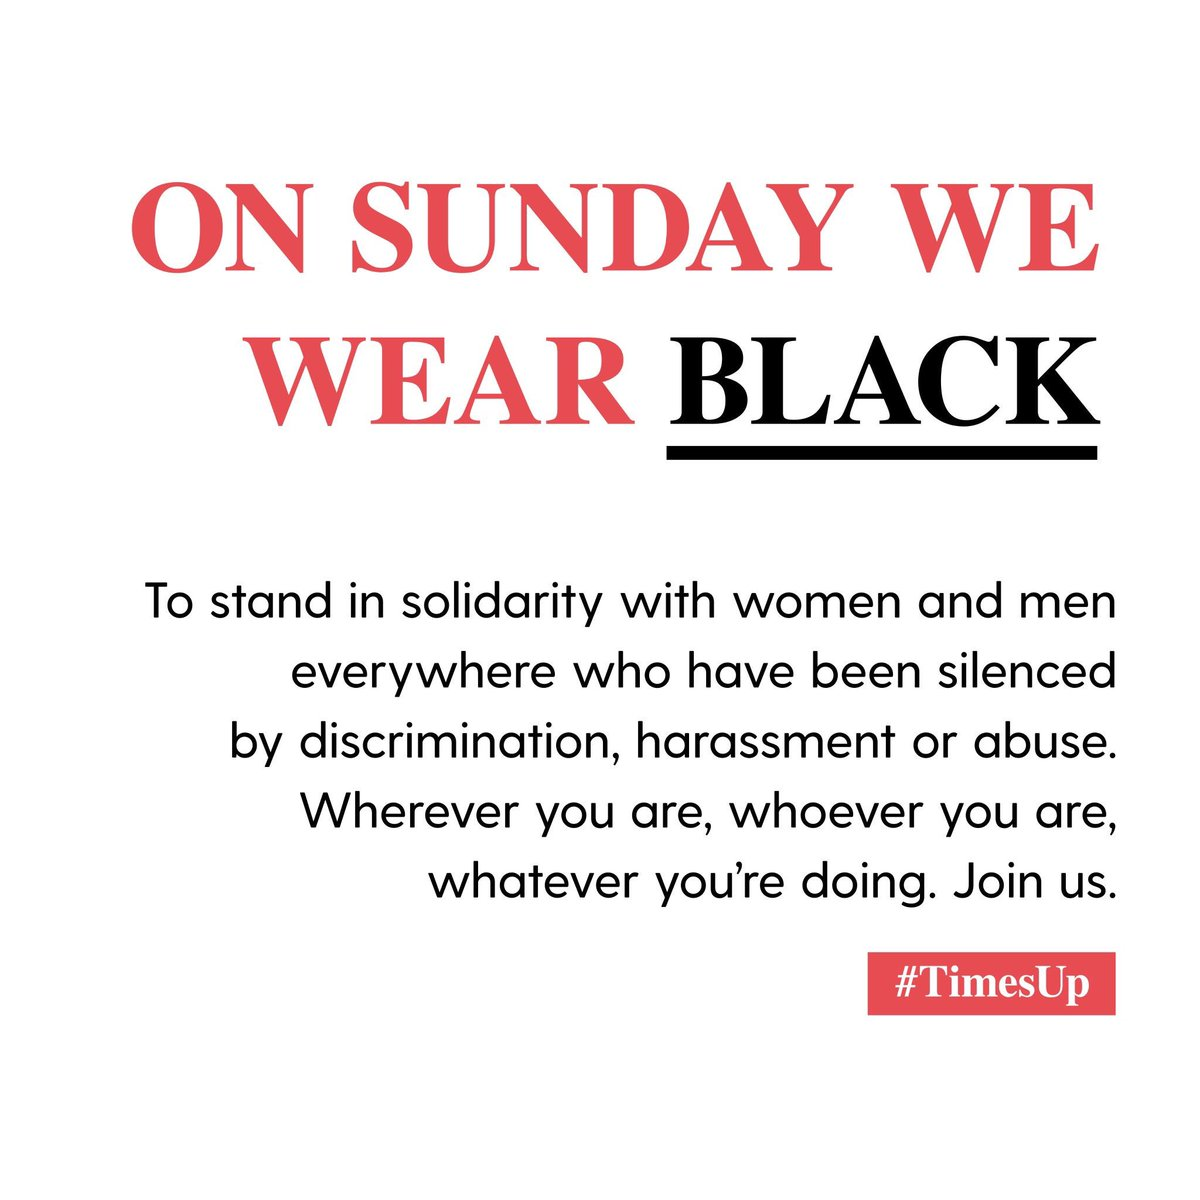 RT @thedanieb: #TIMESUP and the Time is Now. https://t.co/lOmbS1p6Ex